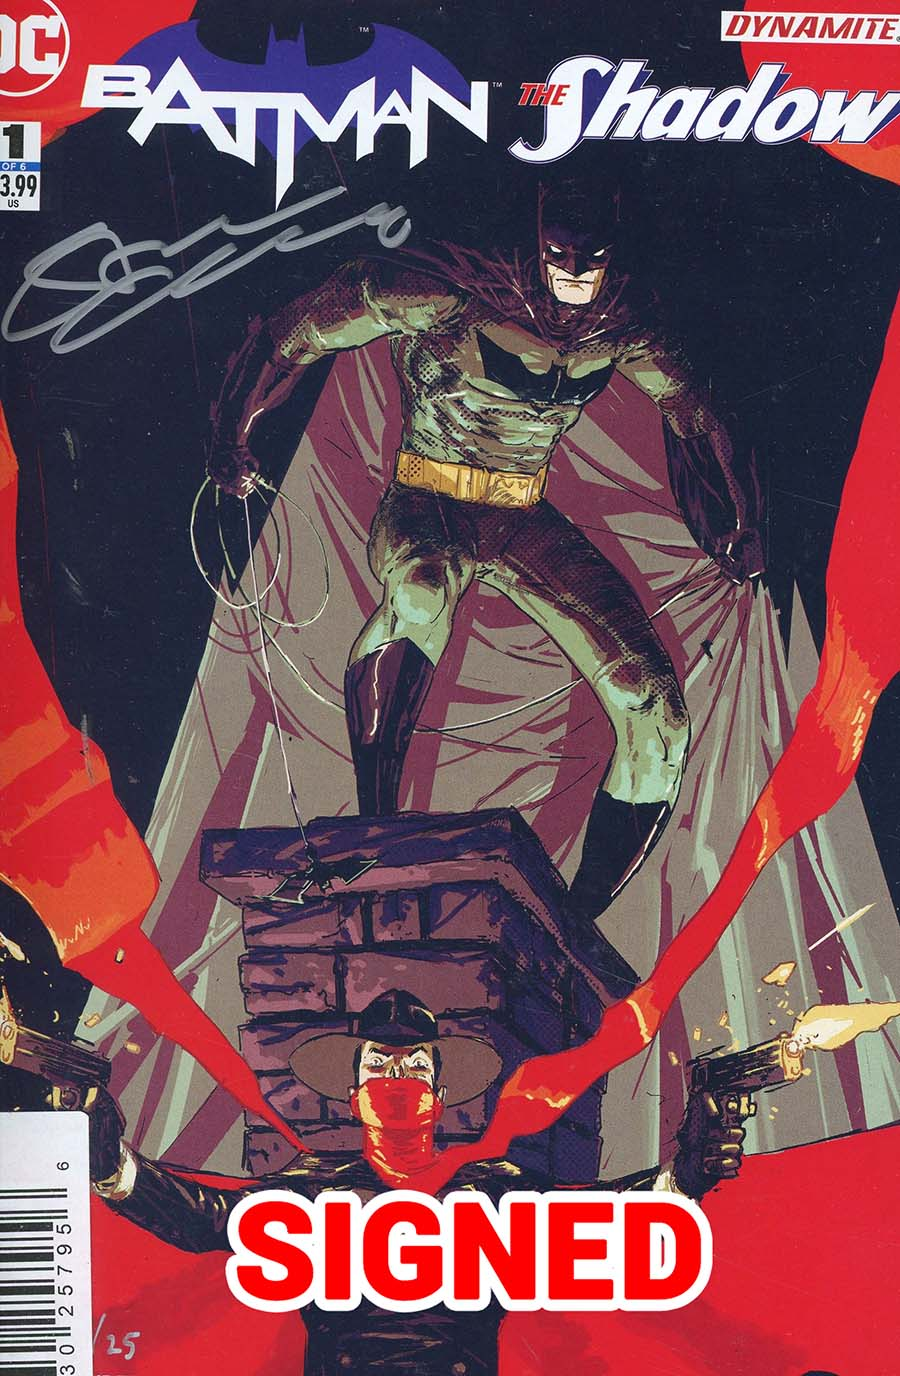 Batman The Shadow #1 Cover G DF Ultra-Limited Shadow Silver Signature Series Signed By Steve Orlando